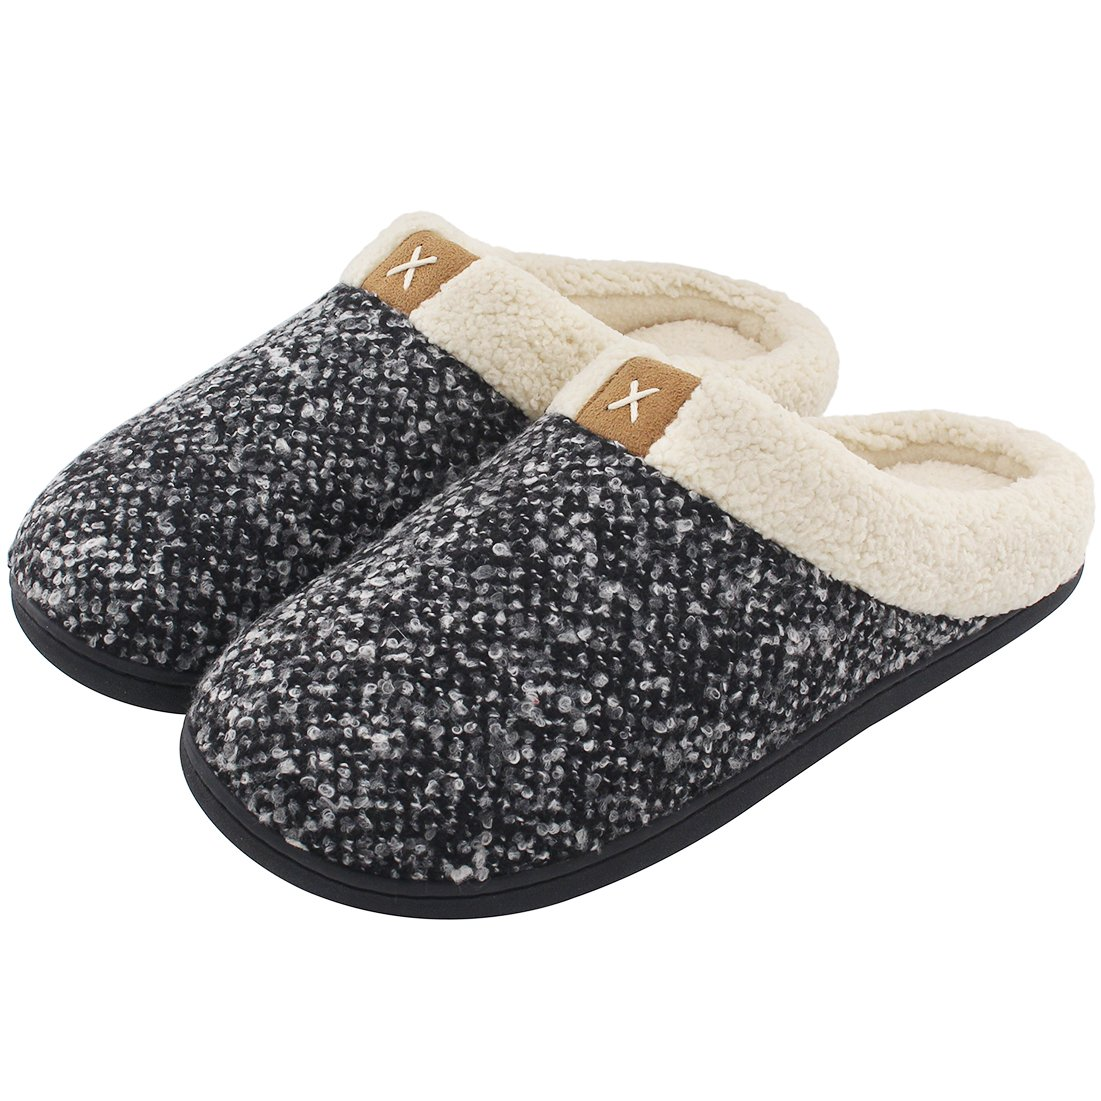 Men's Comfort Memory Foam Slippers Wool-Like Plush Fleece Lined House Shoes w/Indoor, Outdoor Anti-Skid Rubber Sole (Large/11-12 D(M) US, Black)